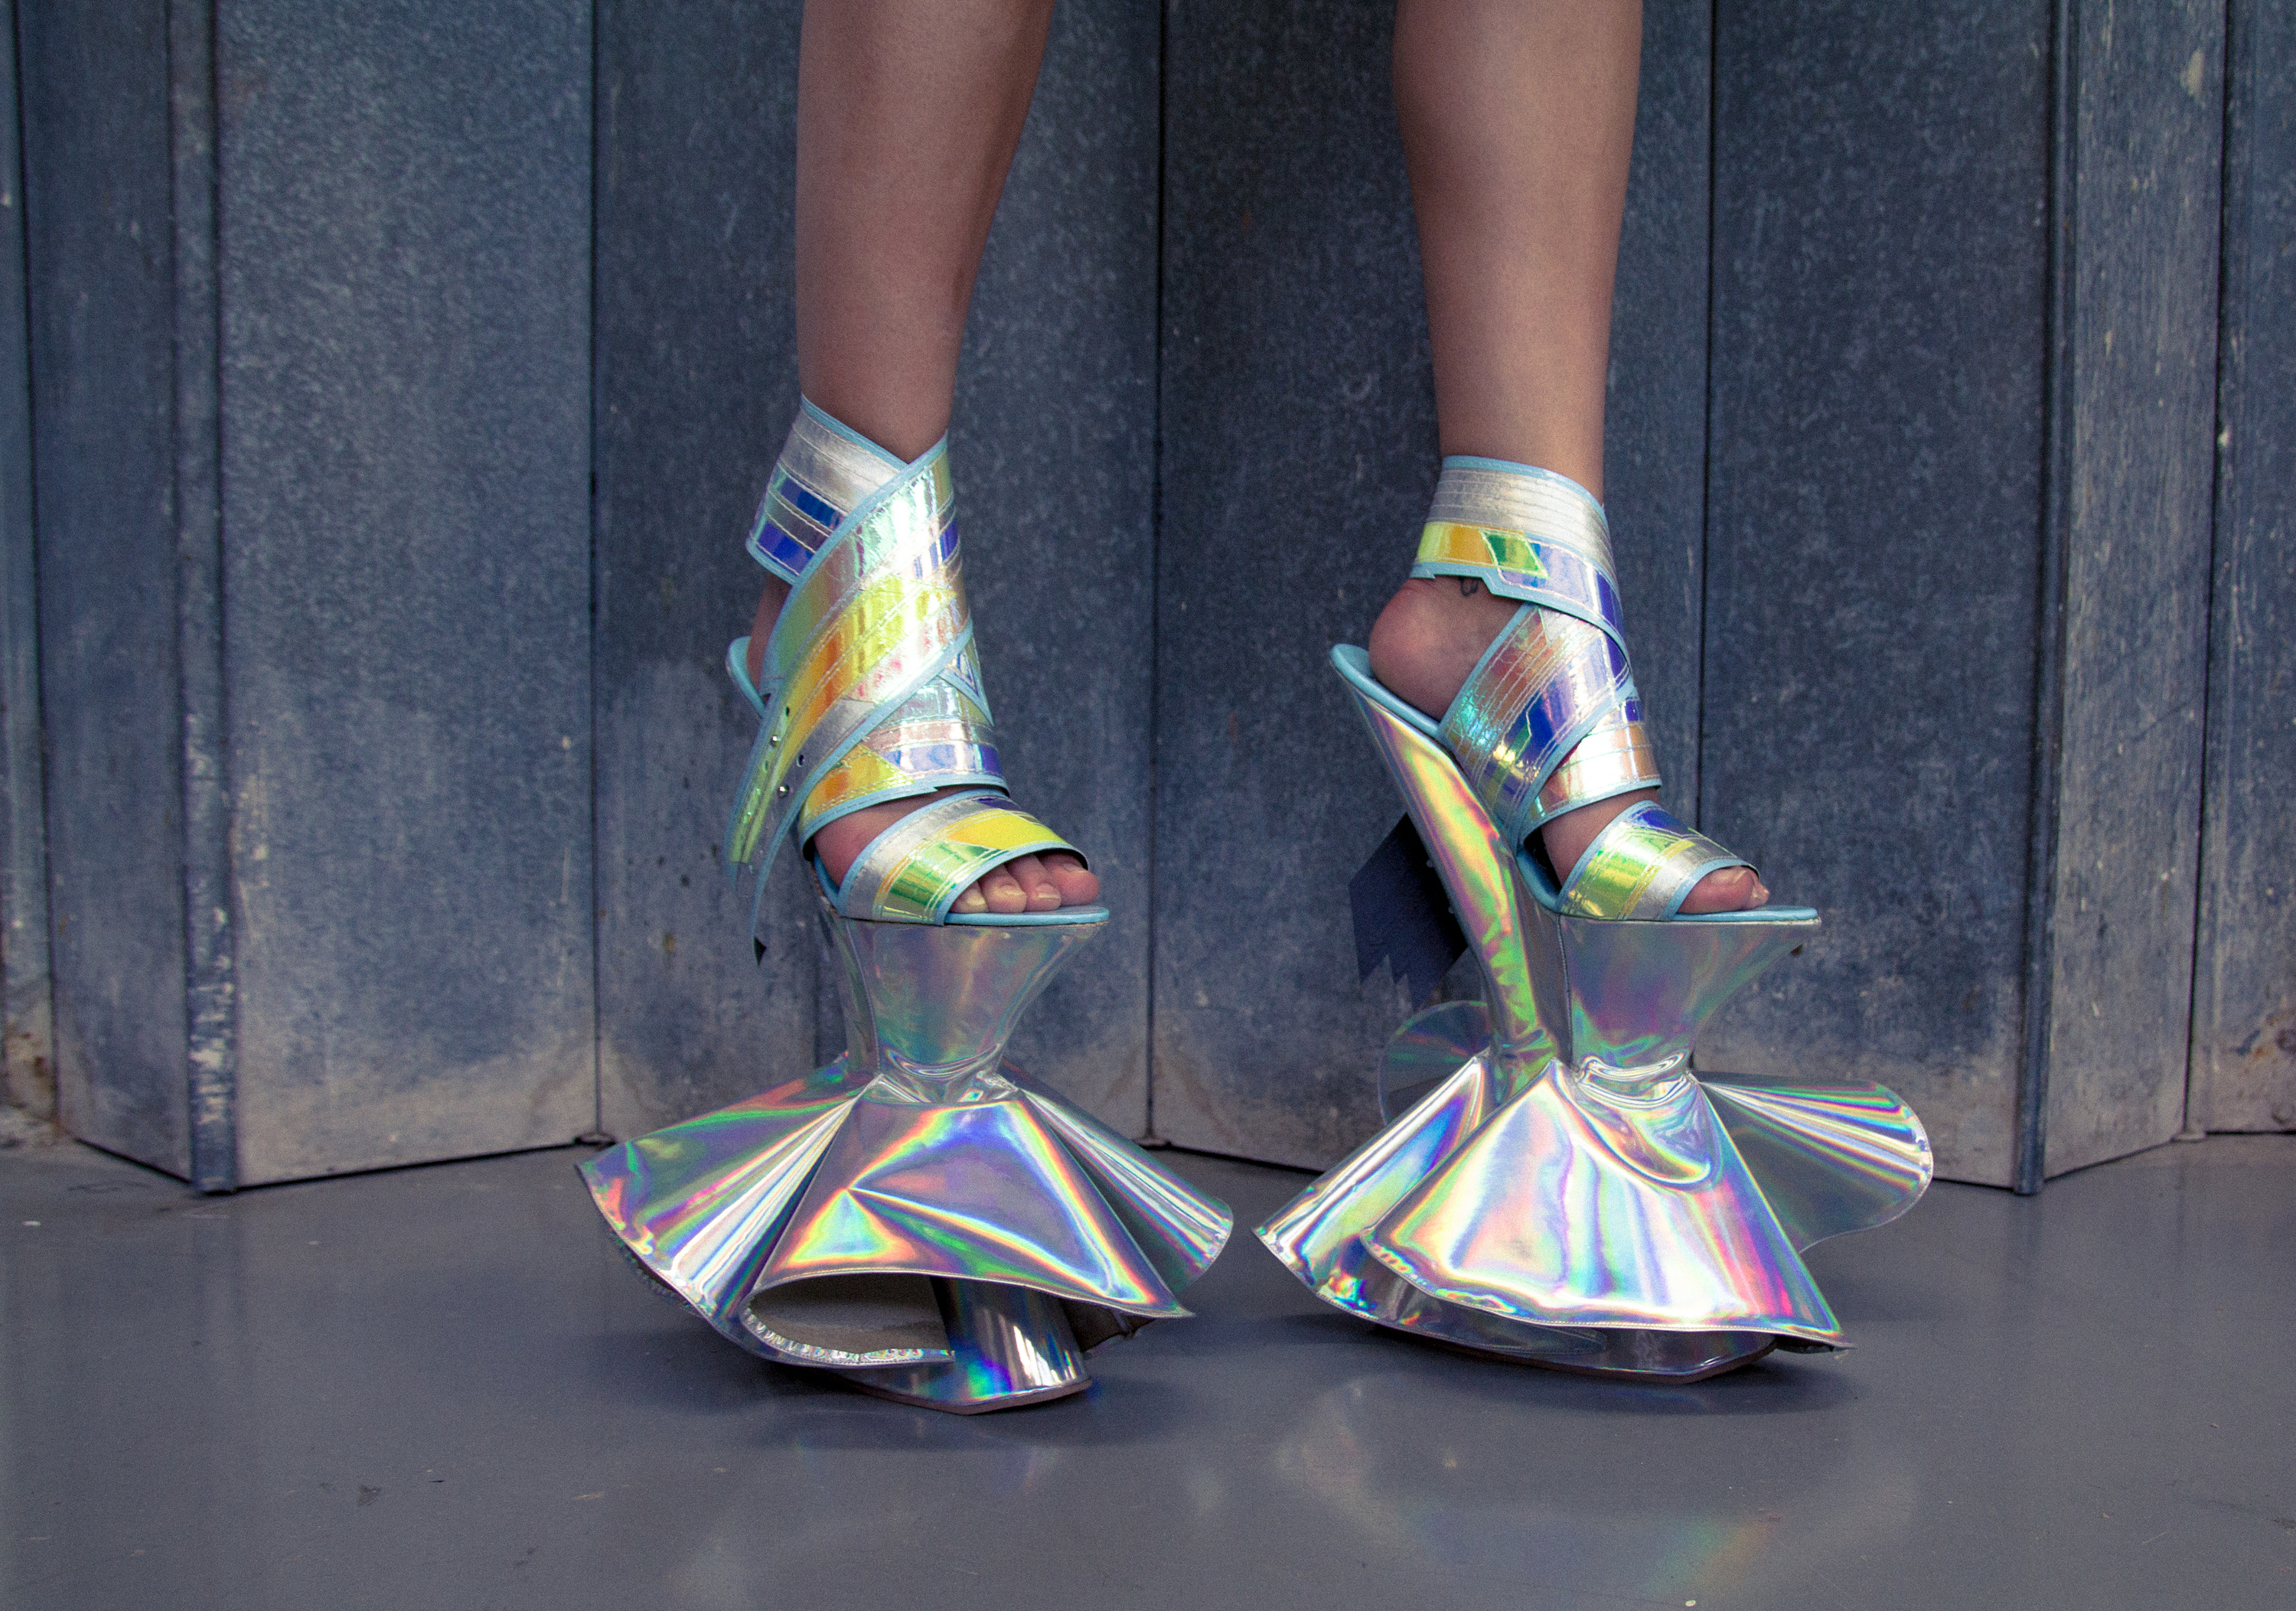 84f8e53ab5d2 kira goodey s bespoke footwear is inspired by dragons and vaginas - i-D